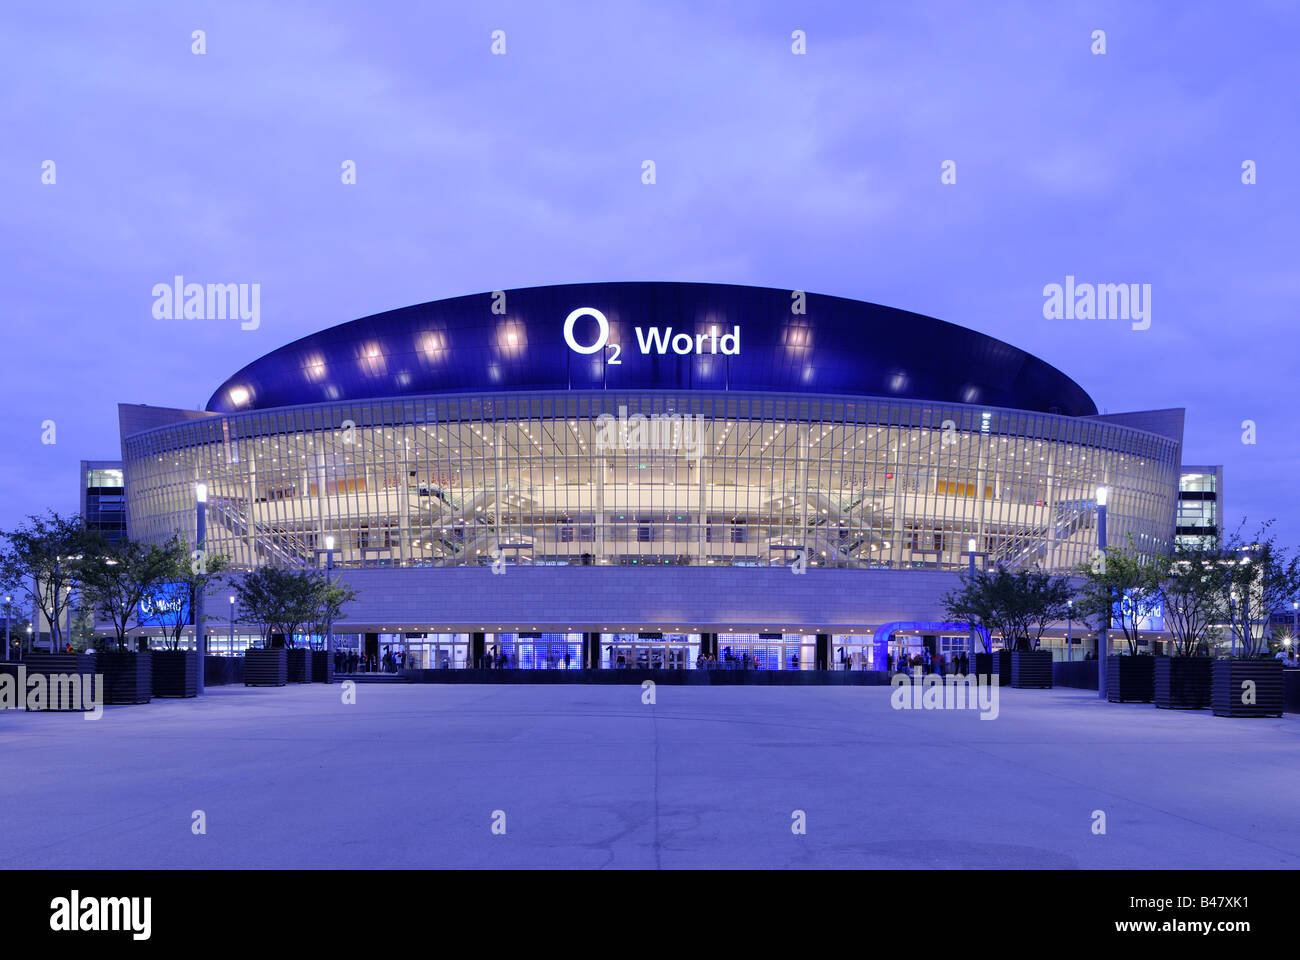 o2 world o2 arena of the anschutz entertainment group berlin stock photo royalty free image. Black Bedroom Furniture Sets. Home Design Ideas